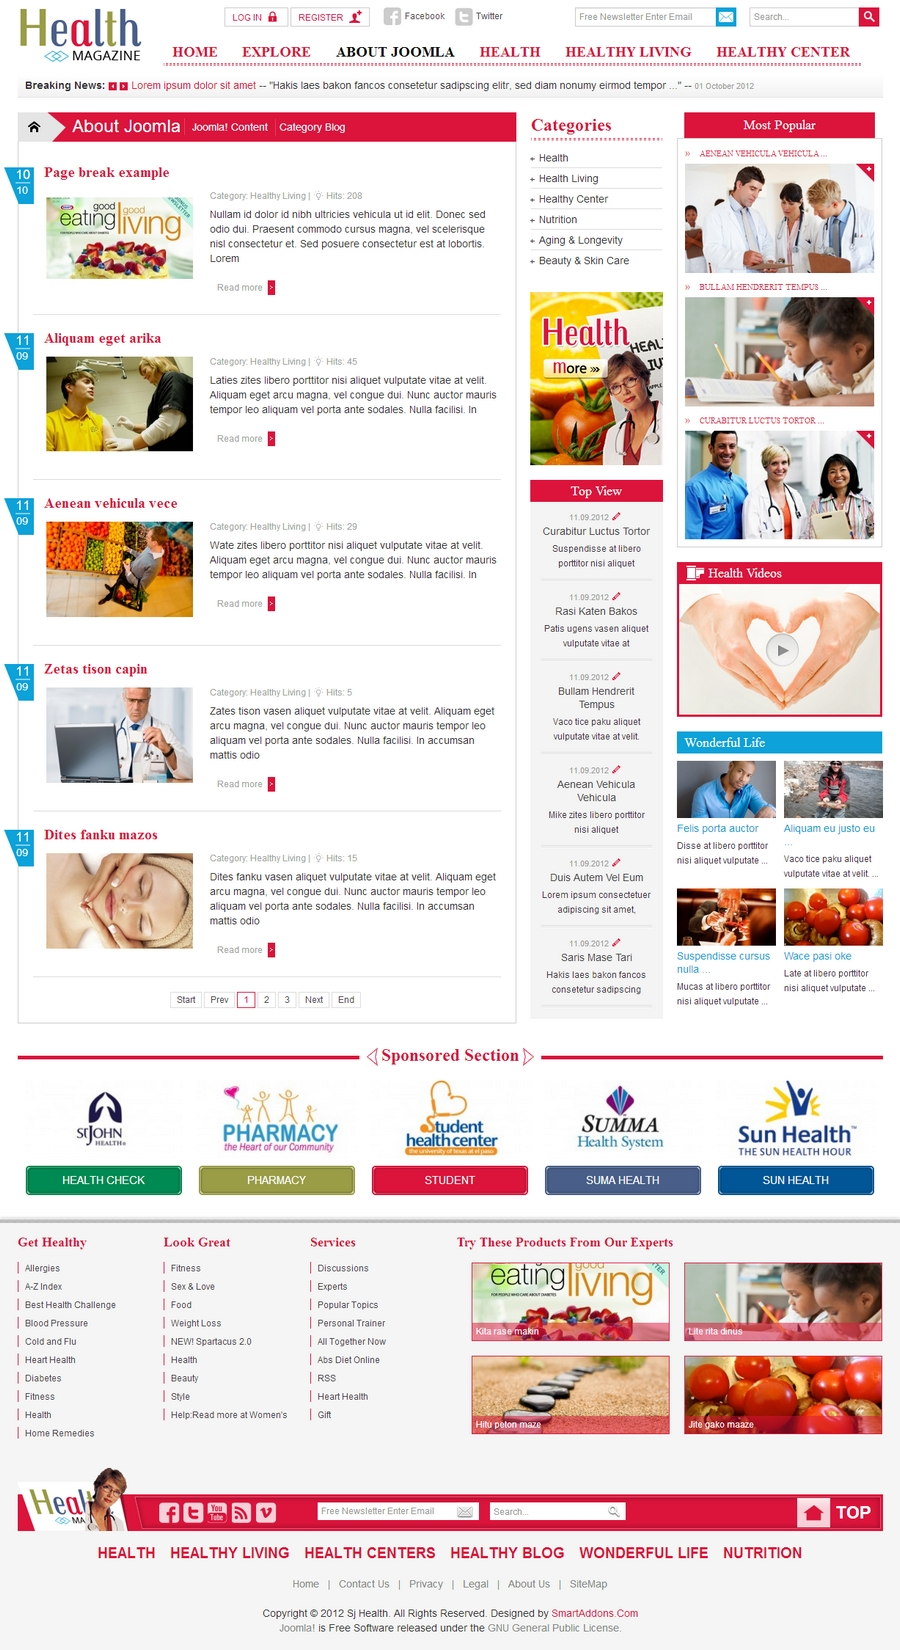 SJ Health - Responsive Joomla Healthcare Template - 02blog.jpg